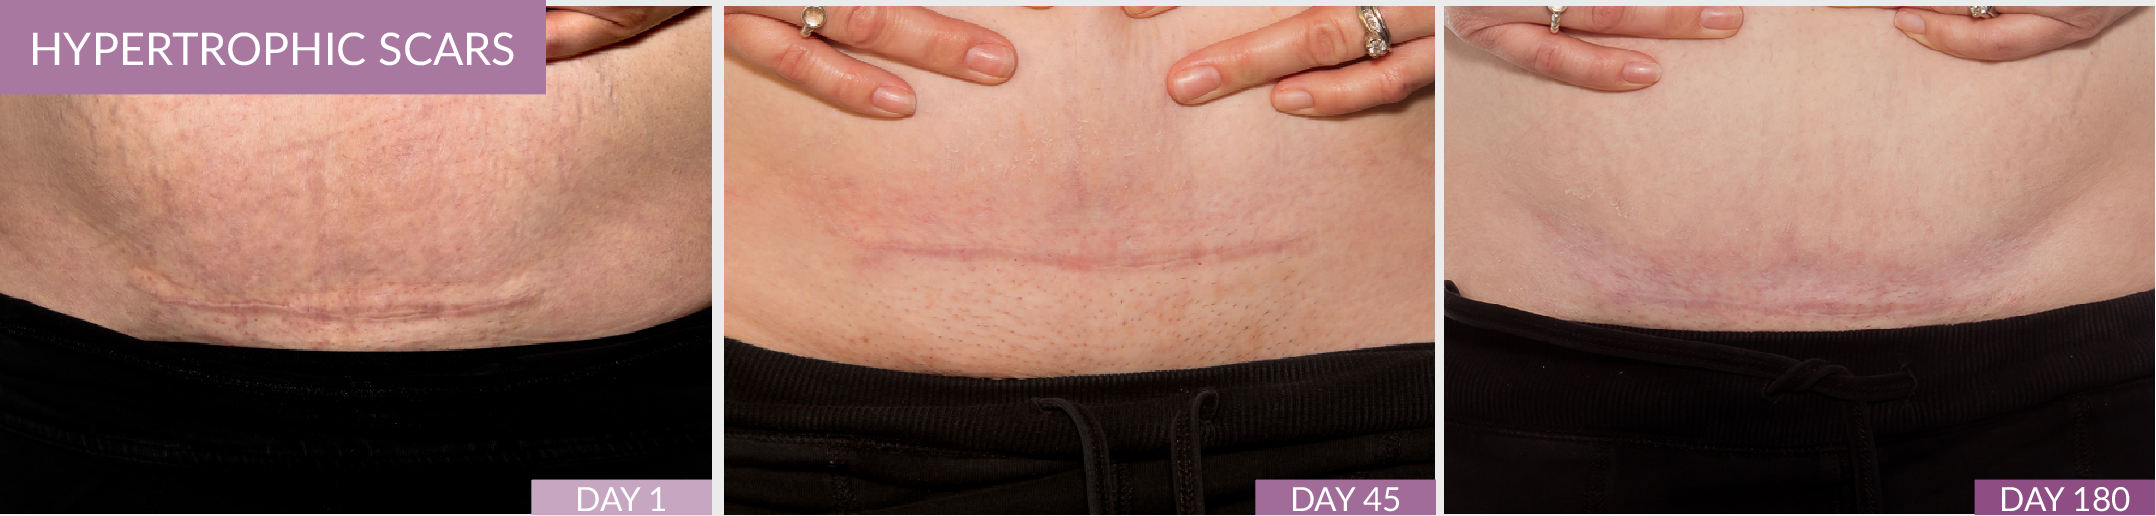 Hypertrophic Scars C-Section Scar Fusion Pharmacy